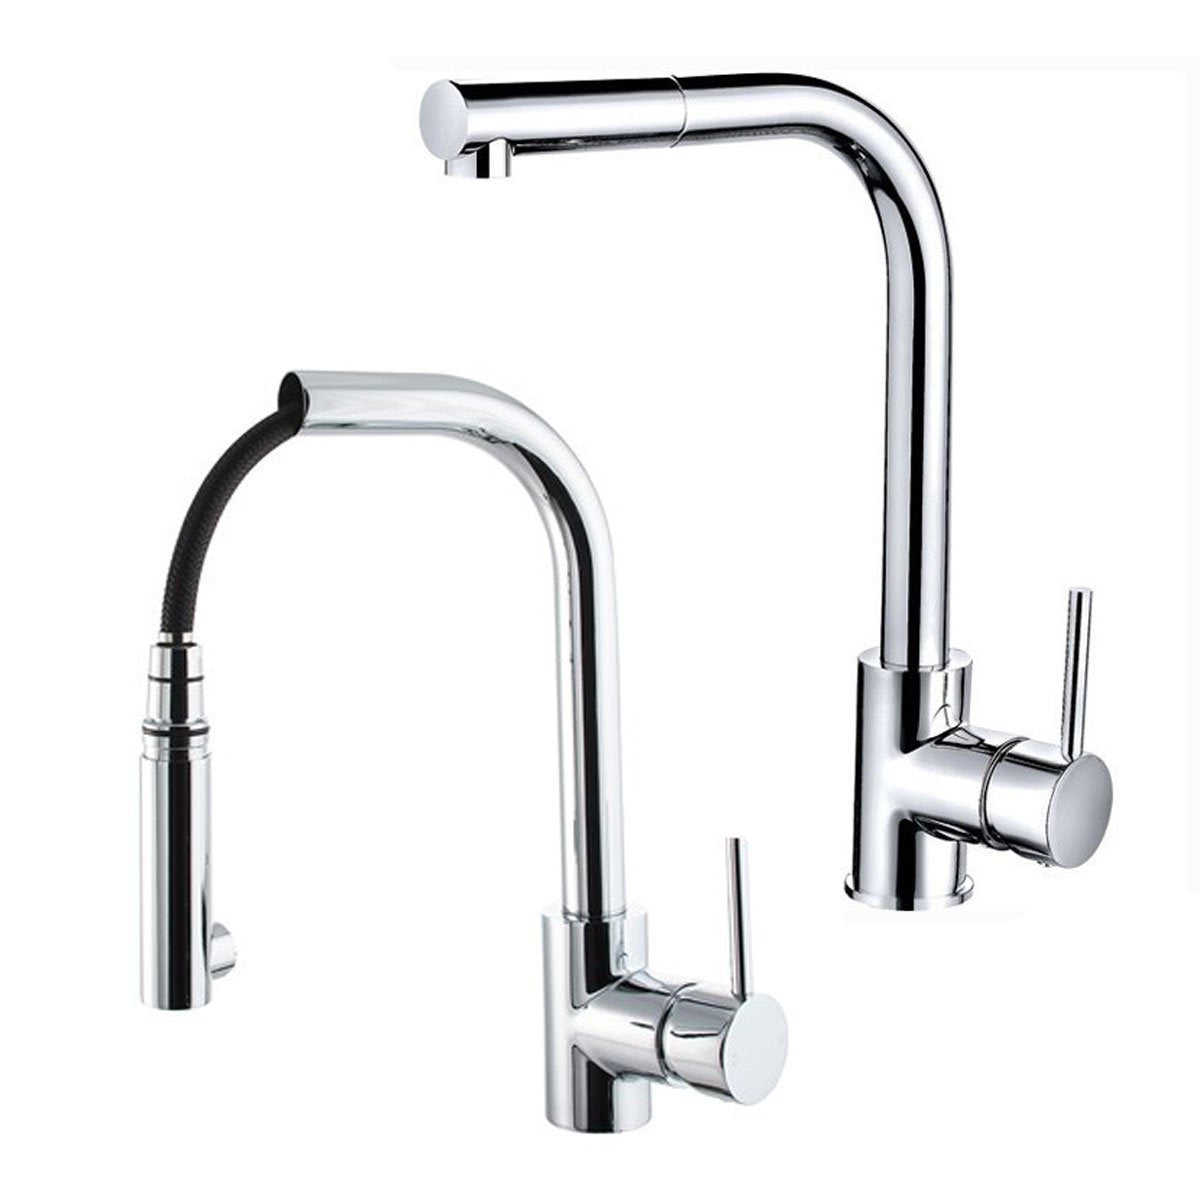 Cassellie Single Lever Mono Kitchen Sink Mixer with Pull Out Spray - Chrome